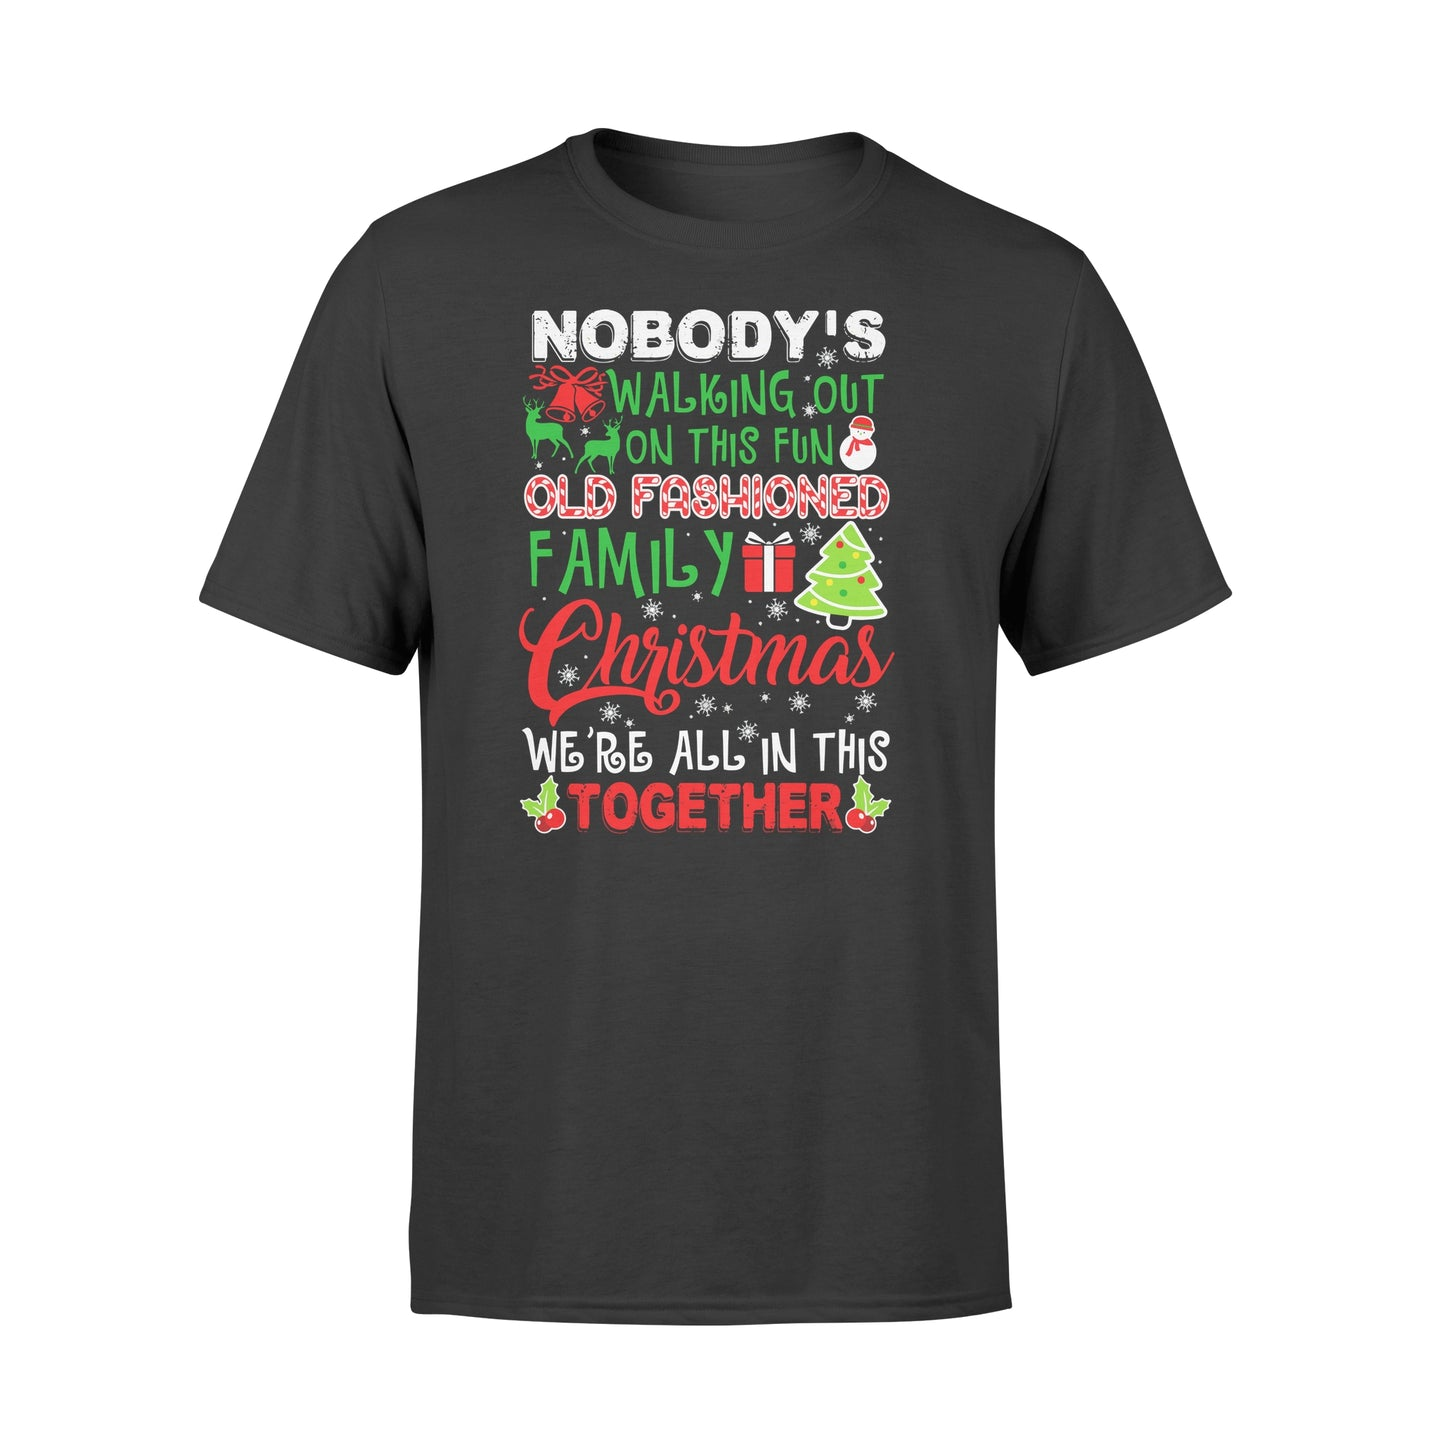 Family Christmas We're All In This Together - Standard T-shirt Apparel S / Black